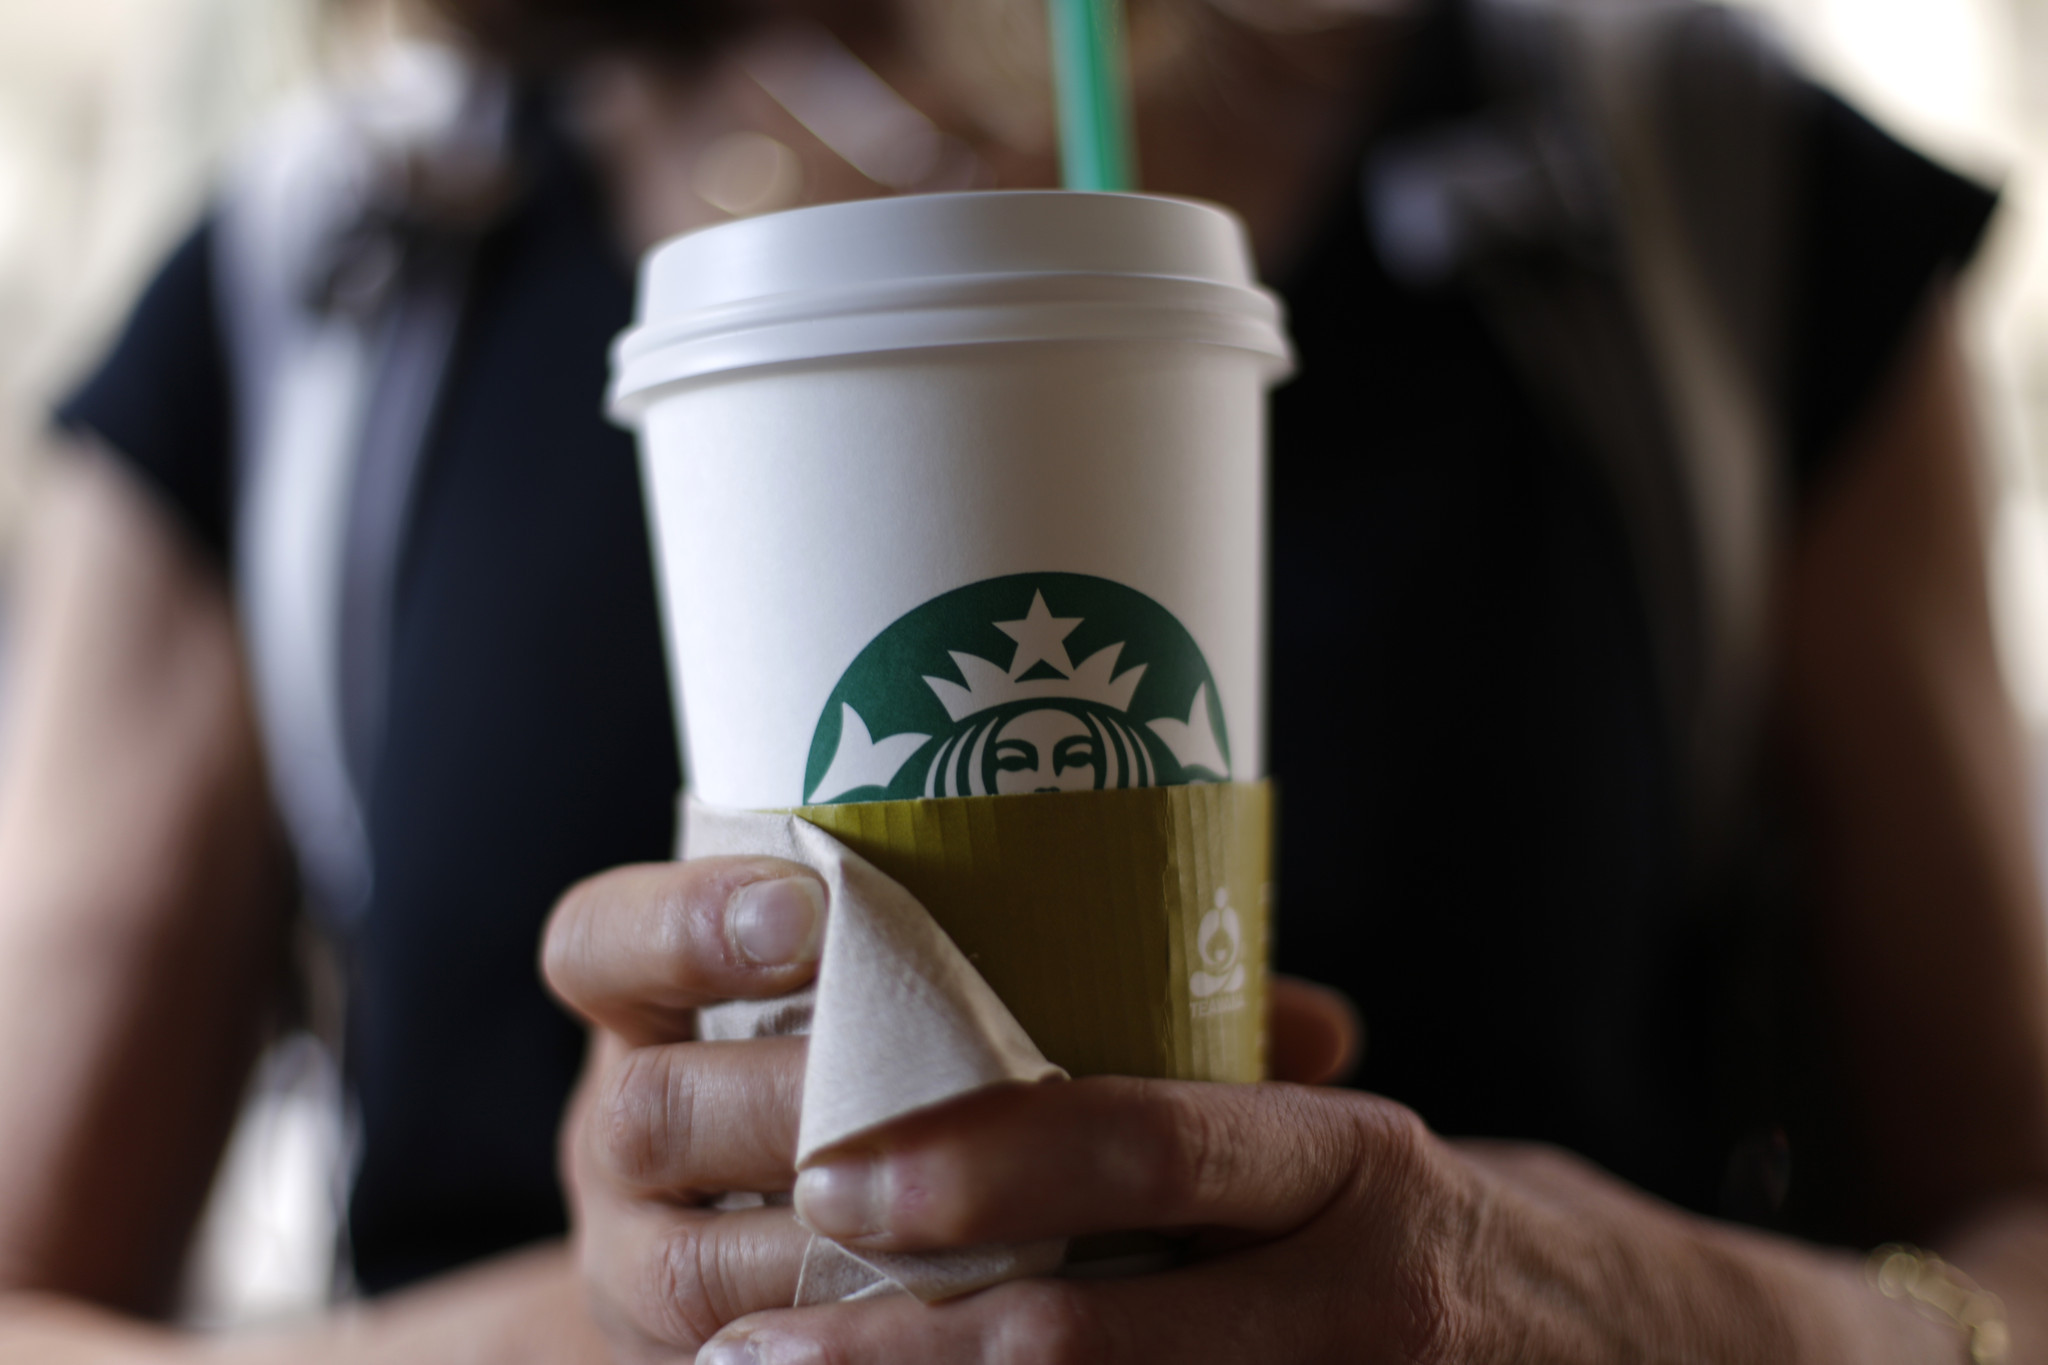 what are the expectations of starbucks customers in terms of starbucks beverages Starbucks says its profit rose 34 percent in the latest quarter as customers spent more on  loyal customers give starbucks a  in the company's expectations.